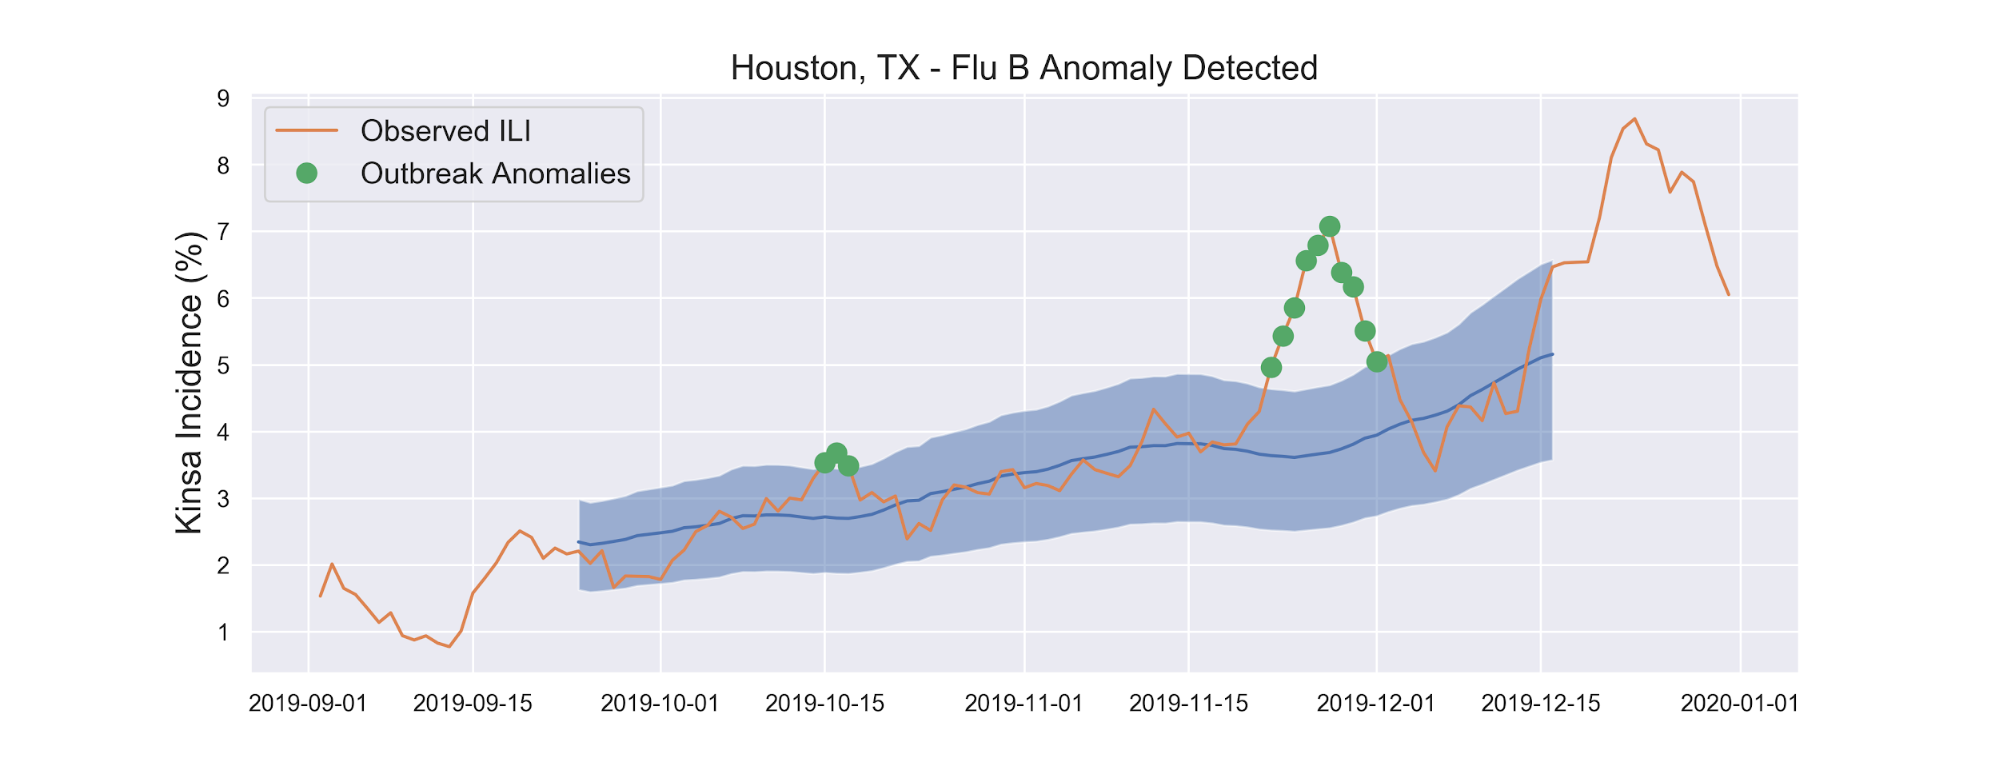 Houston, TX - Flu B Anomaly Detected